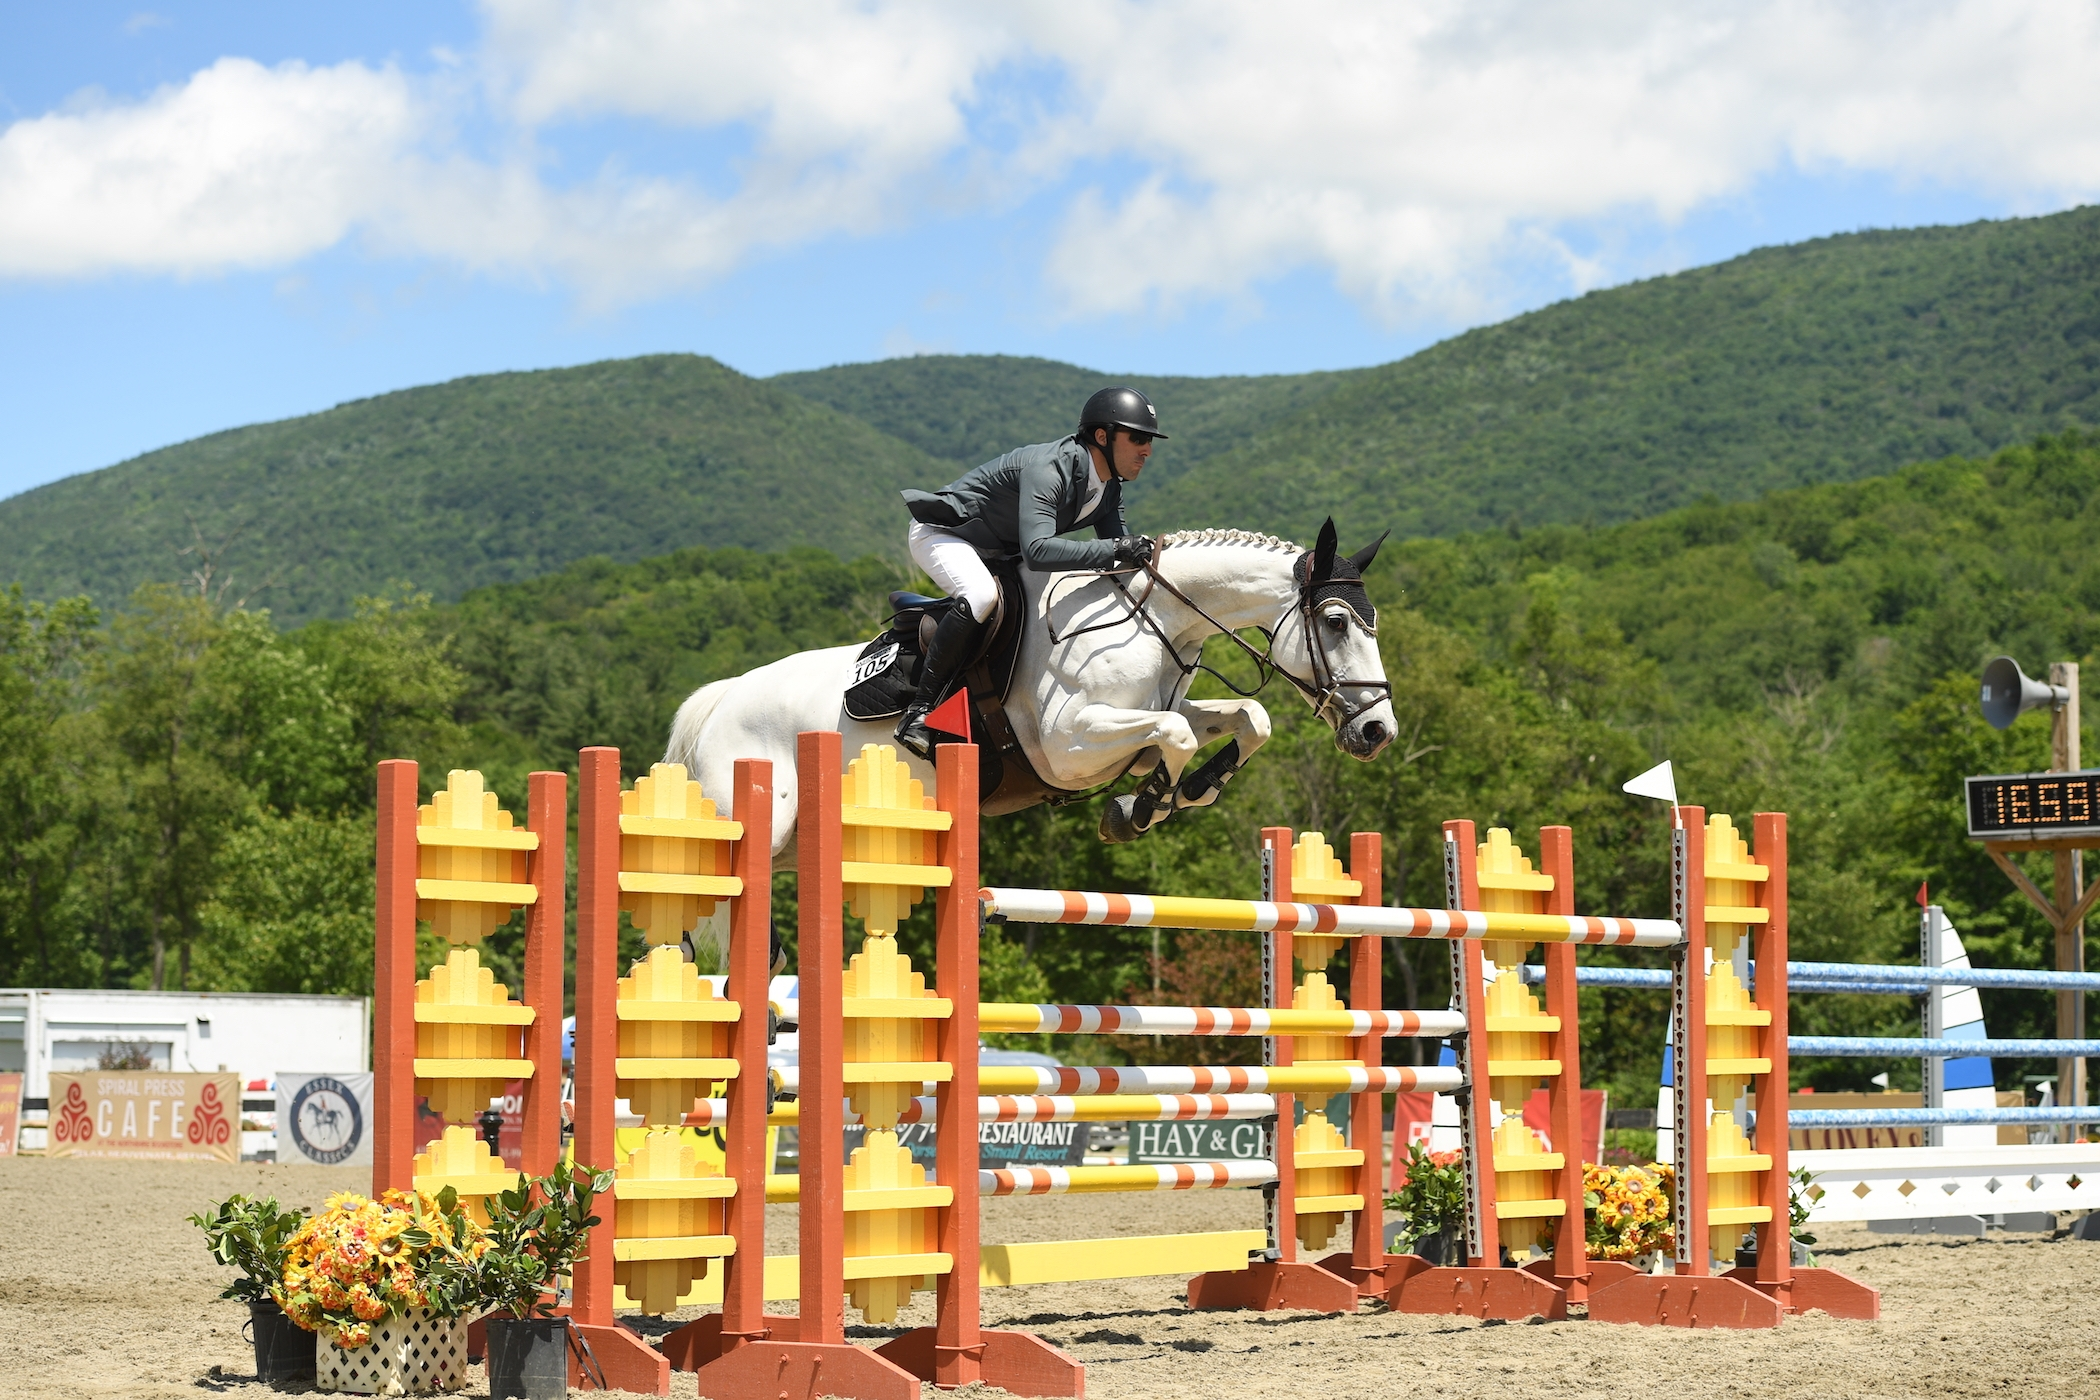 Matthew Metell won the $30,000 Vermont Summer Special Grand Prix riding Donchalant on Saturday, July 8, at the Vermont Summer Festival in East Dorset, VT.<br><b>Photo by <a href='http://www.andrewryback.com/' target='_blank'>Andrew Ryback Photography</a></b>